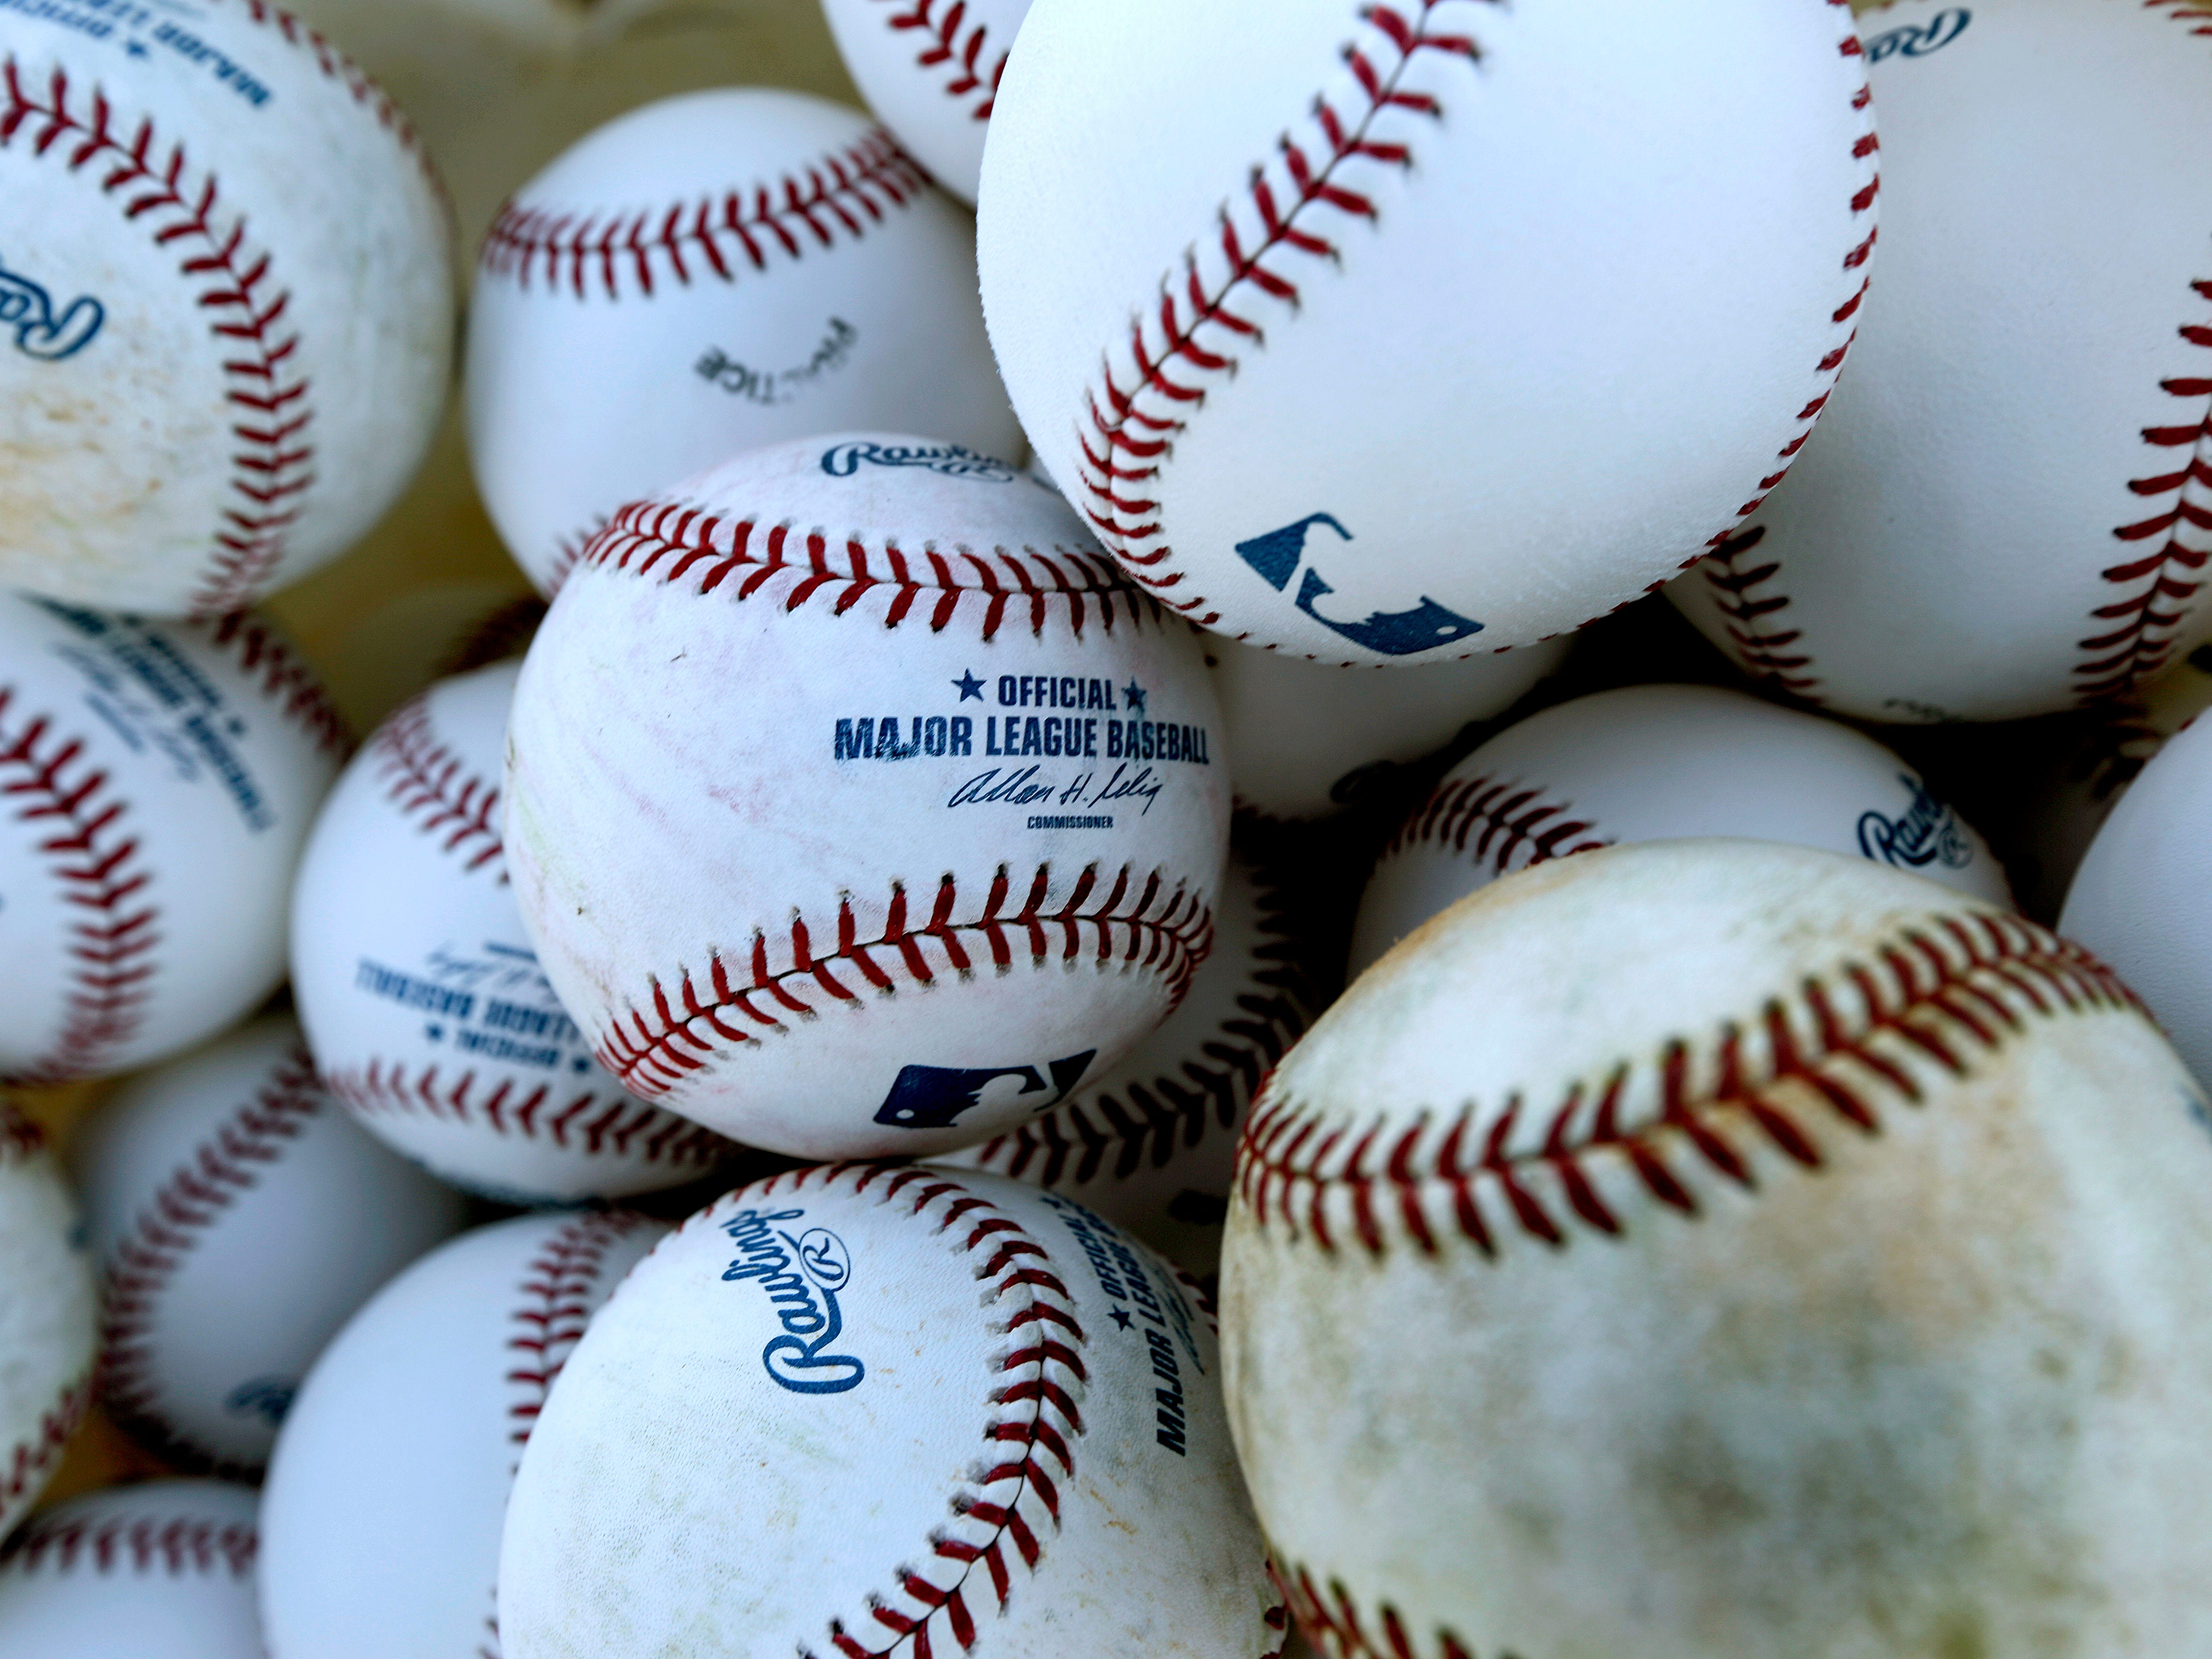 Baseballs sit in a bucket before the official start of spring training baseball at the St. Louis Cardinals training facility, Monday, Feb. 11, 2013, in Jupiter, Fla. (AP Photo/Julio Cortez)